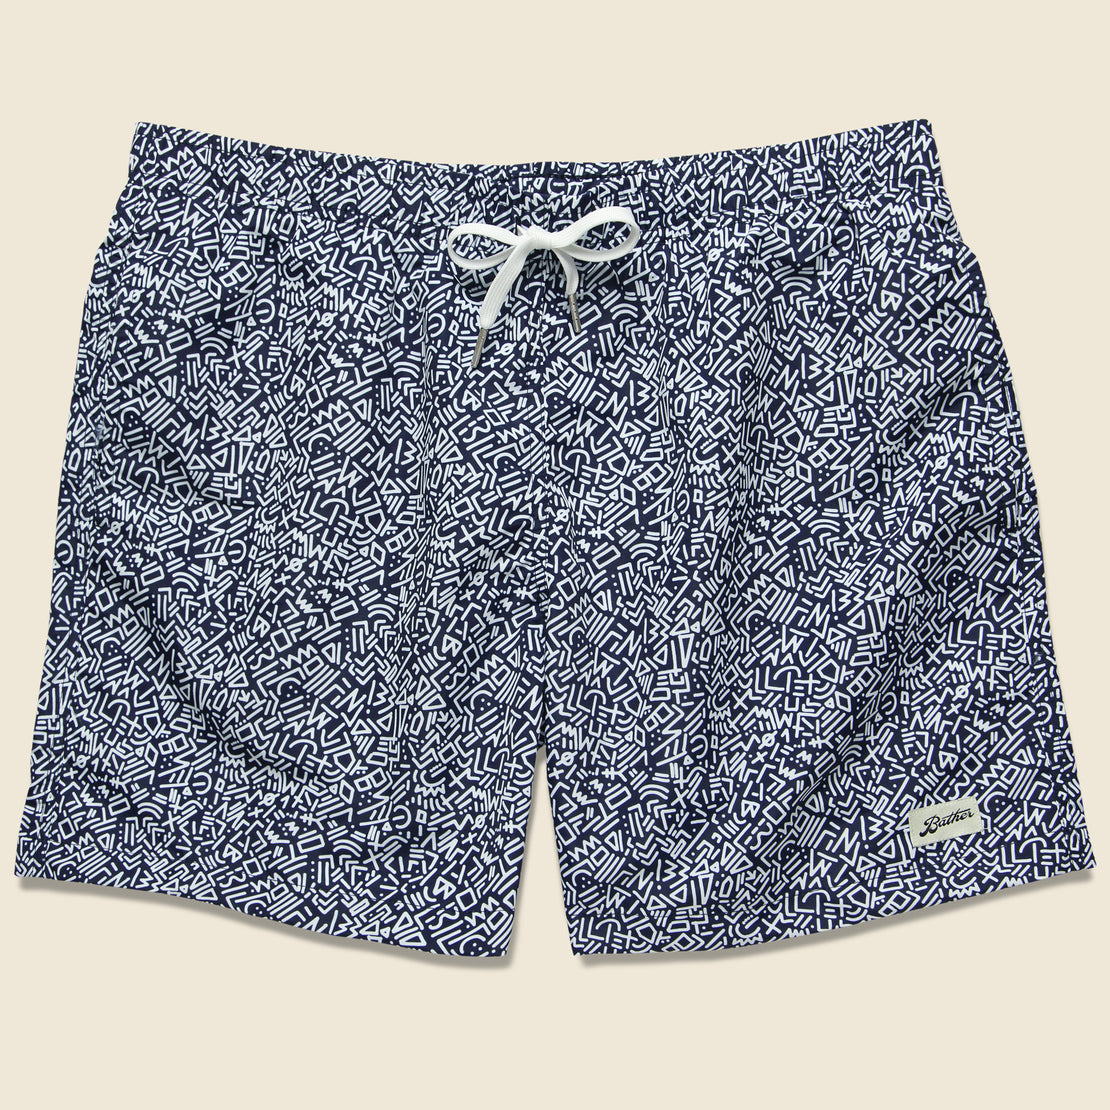 Bather Trunk Co. Doodle Swim Trunk - Blue/White